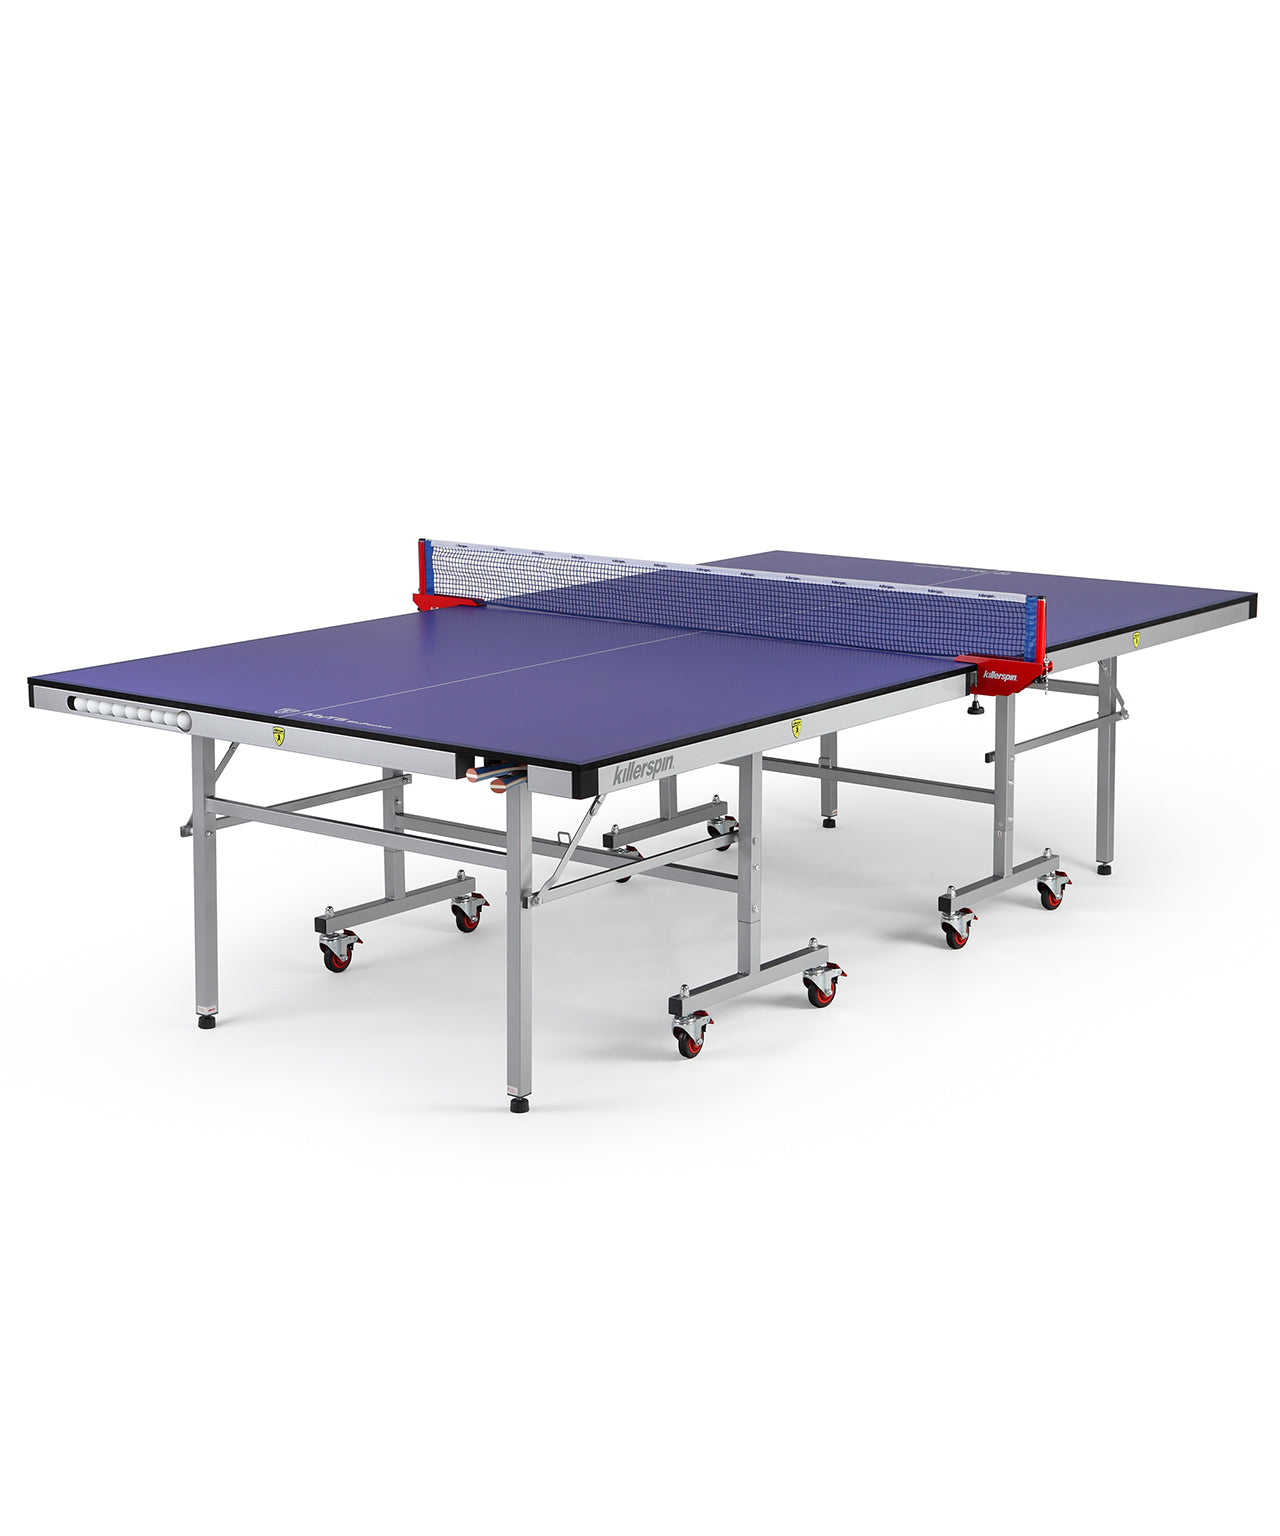 Myt5 blupocket indoor ping pong table killerspin table tennis - Space needed for a ping pong table ...